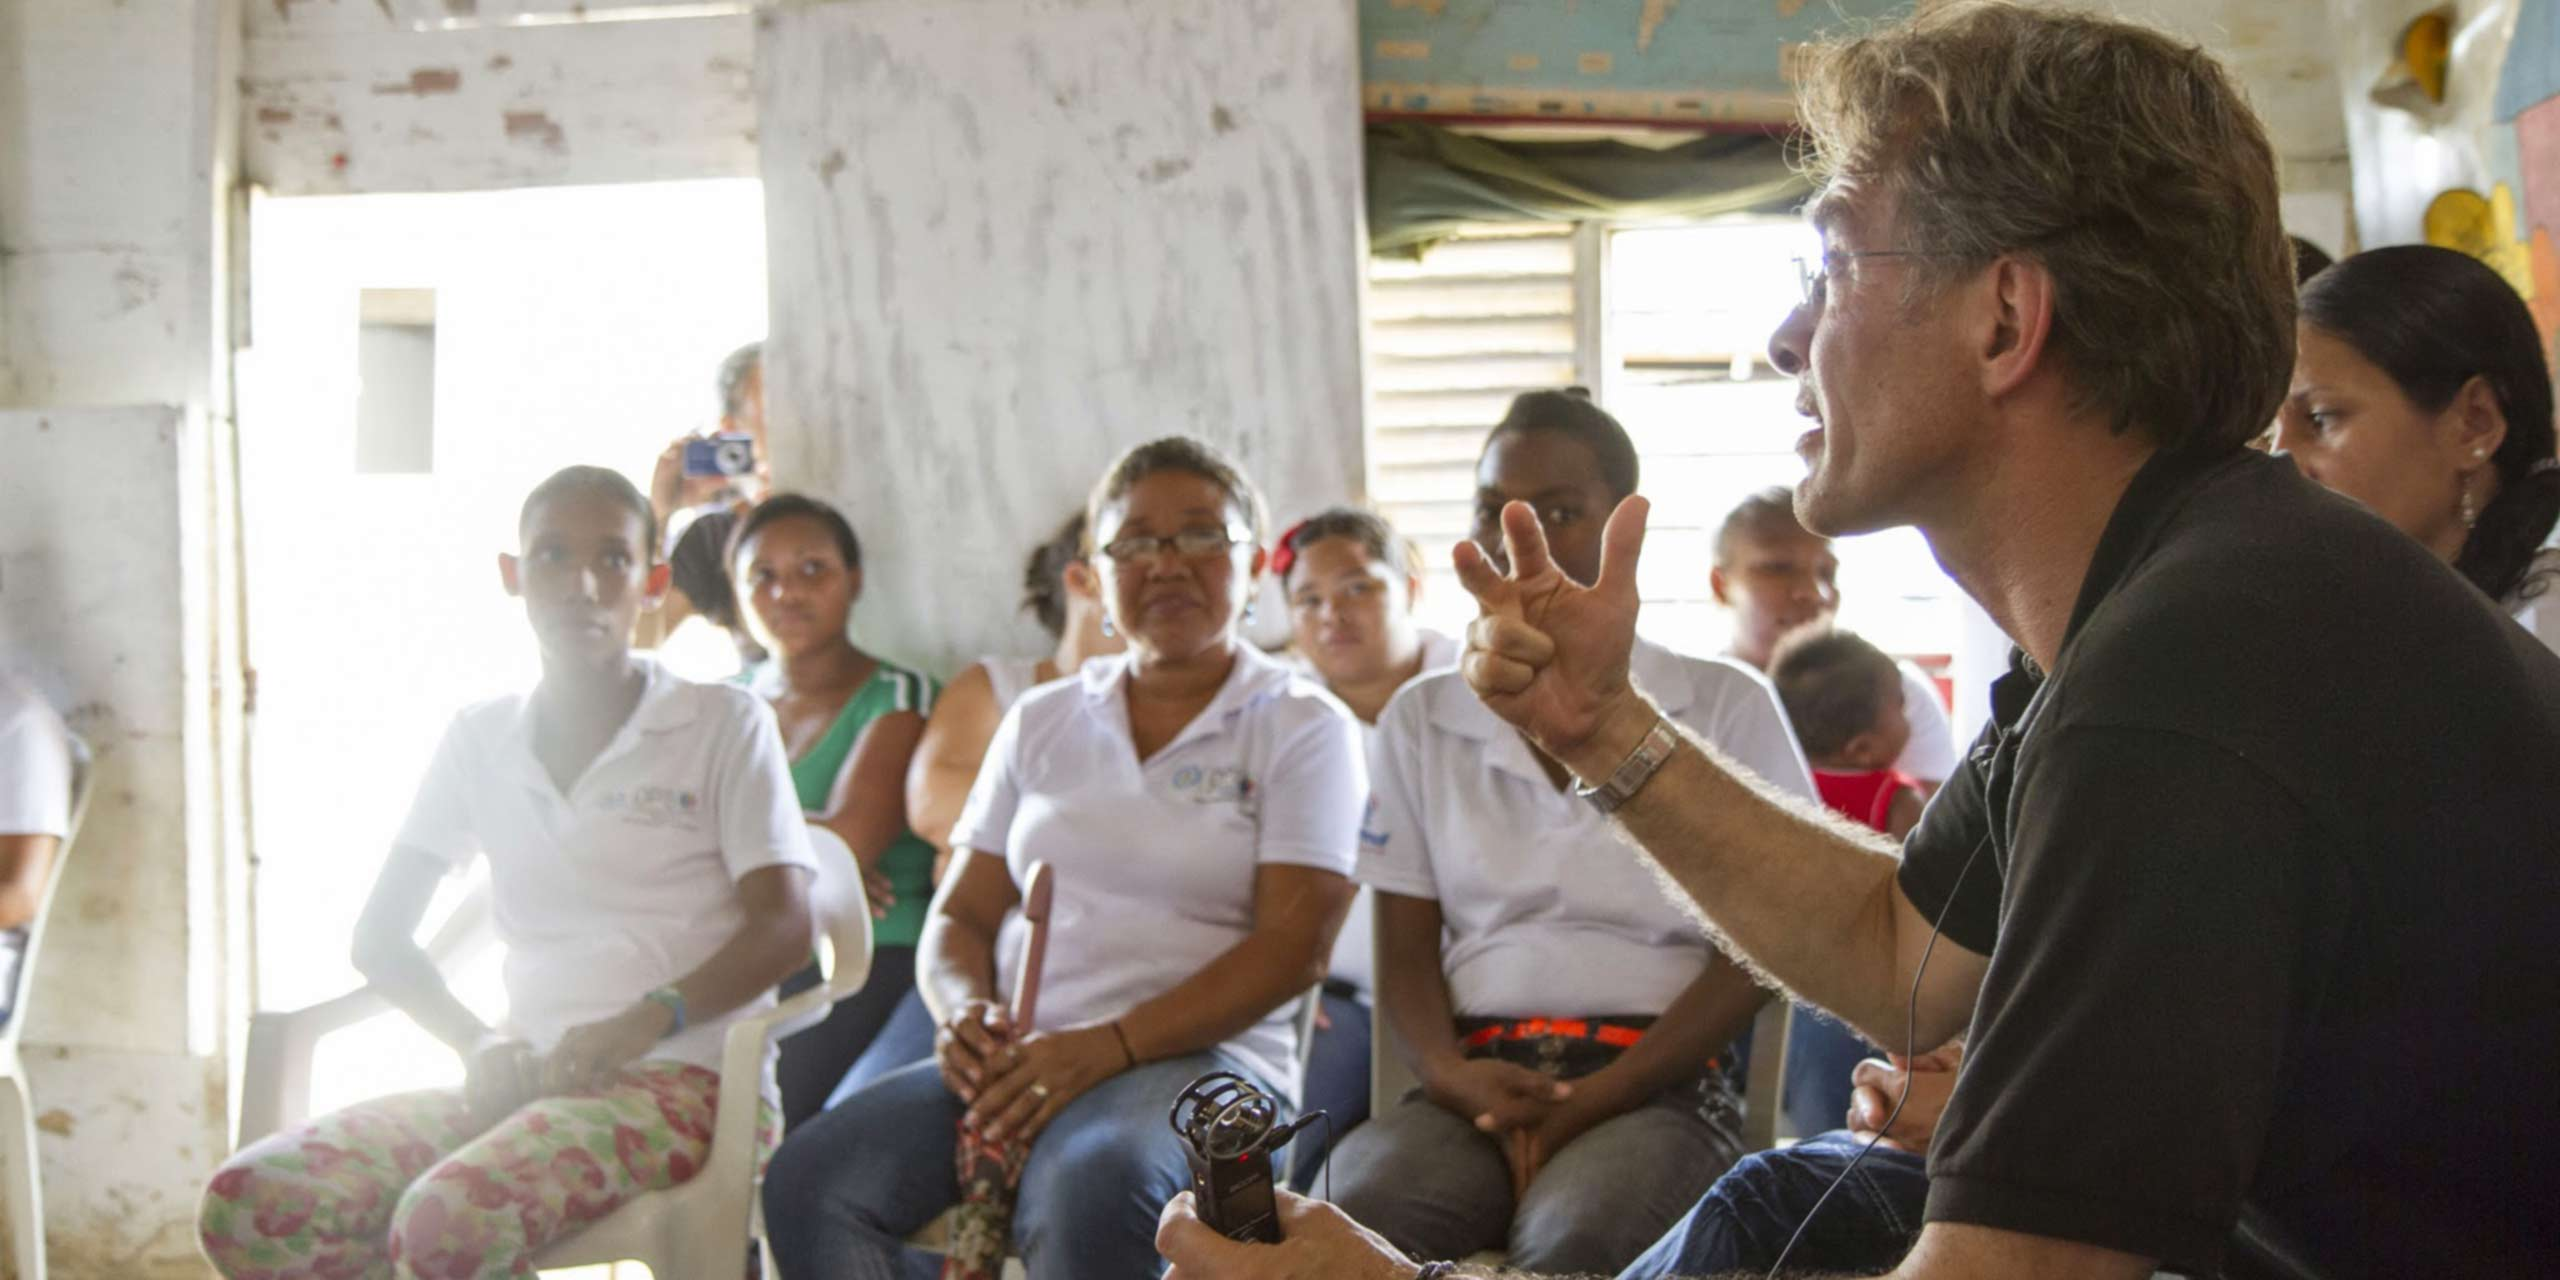 http://staging.skoll.org/wp-content/uploads/2014/03/fundacion-capital-sl3.jpg